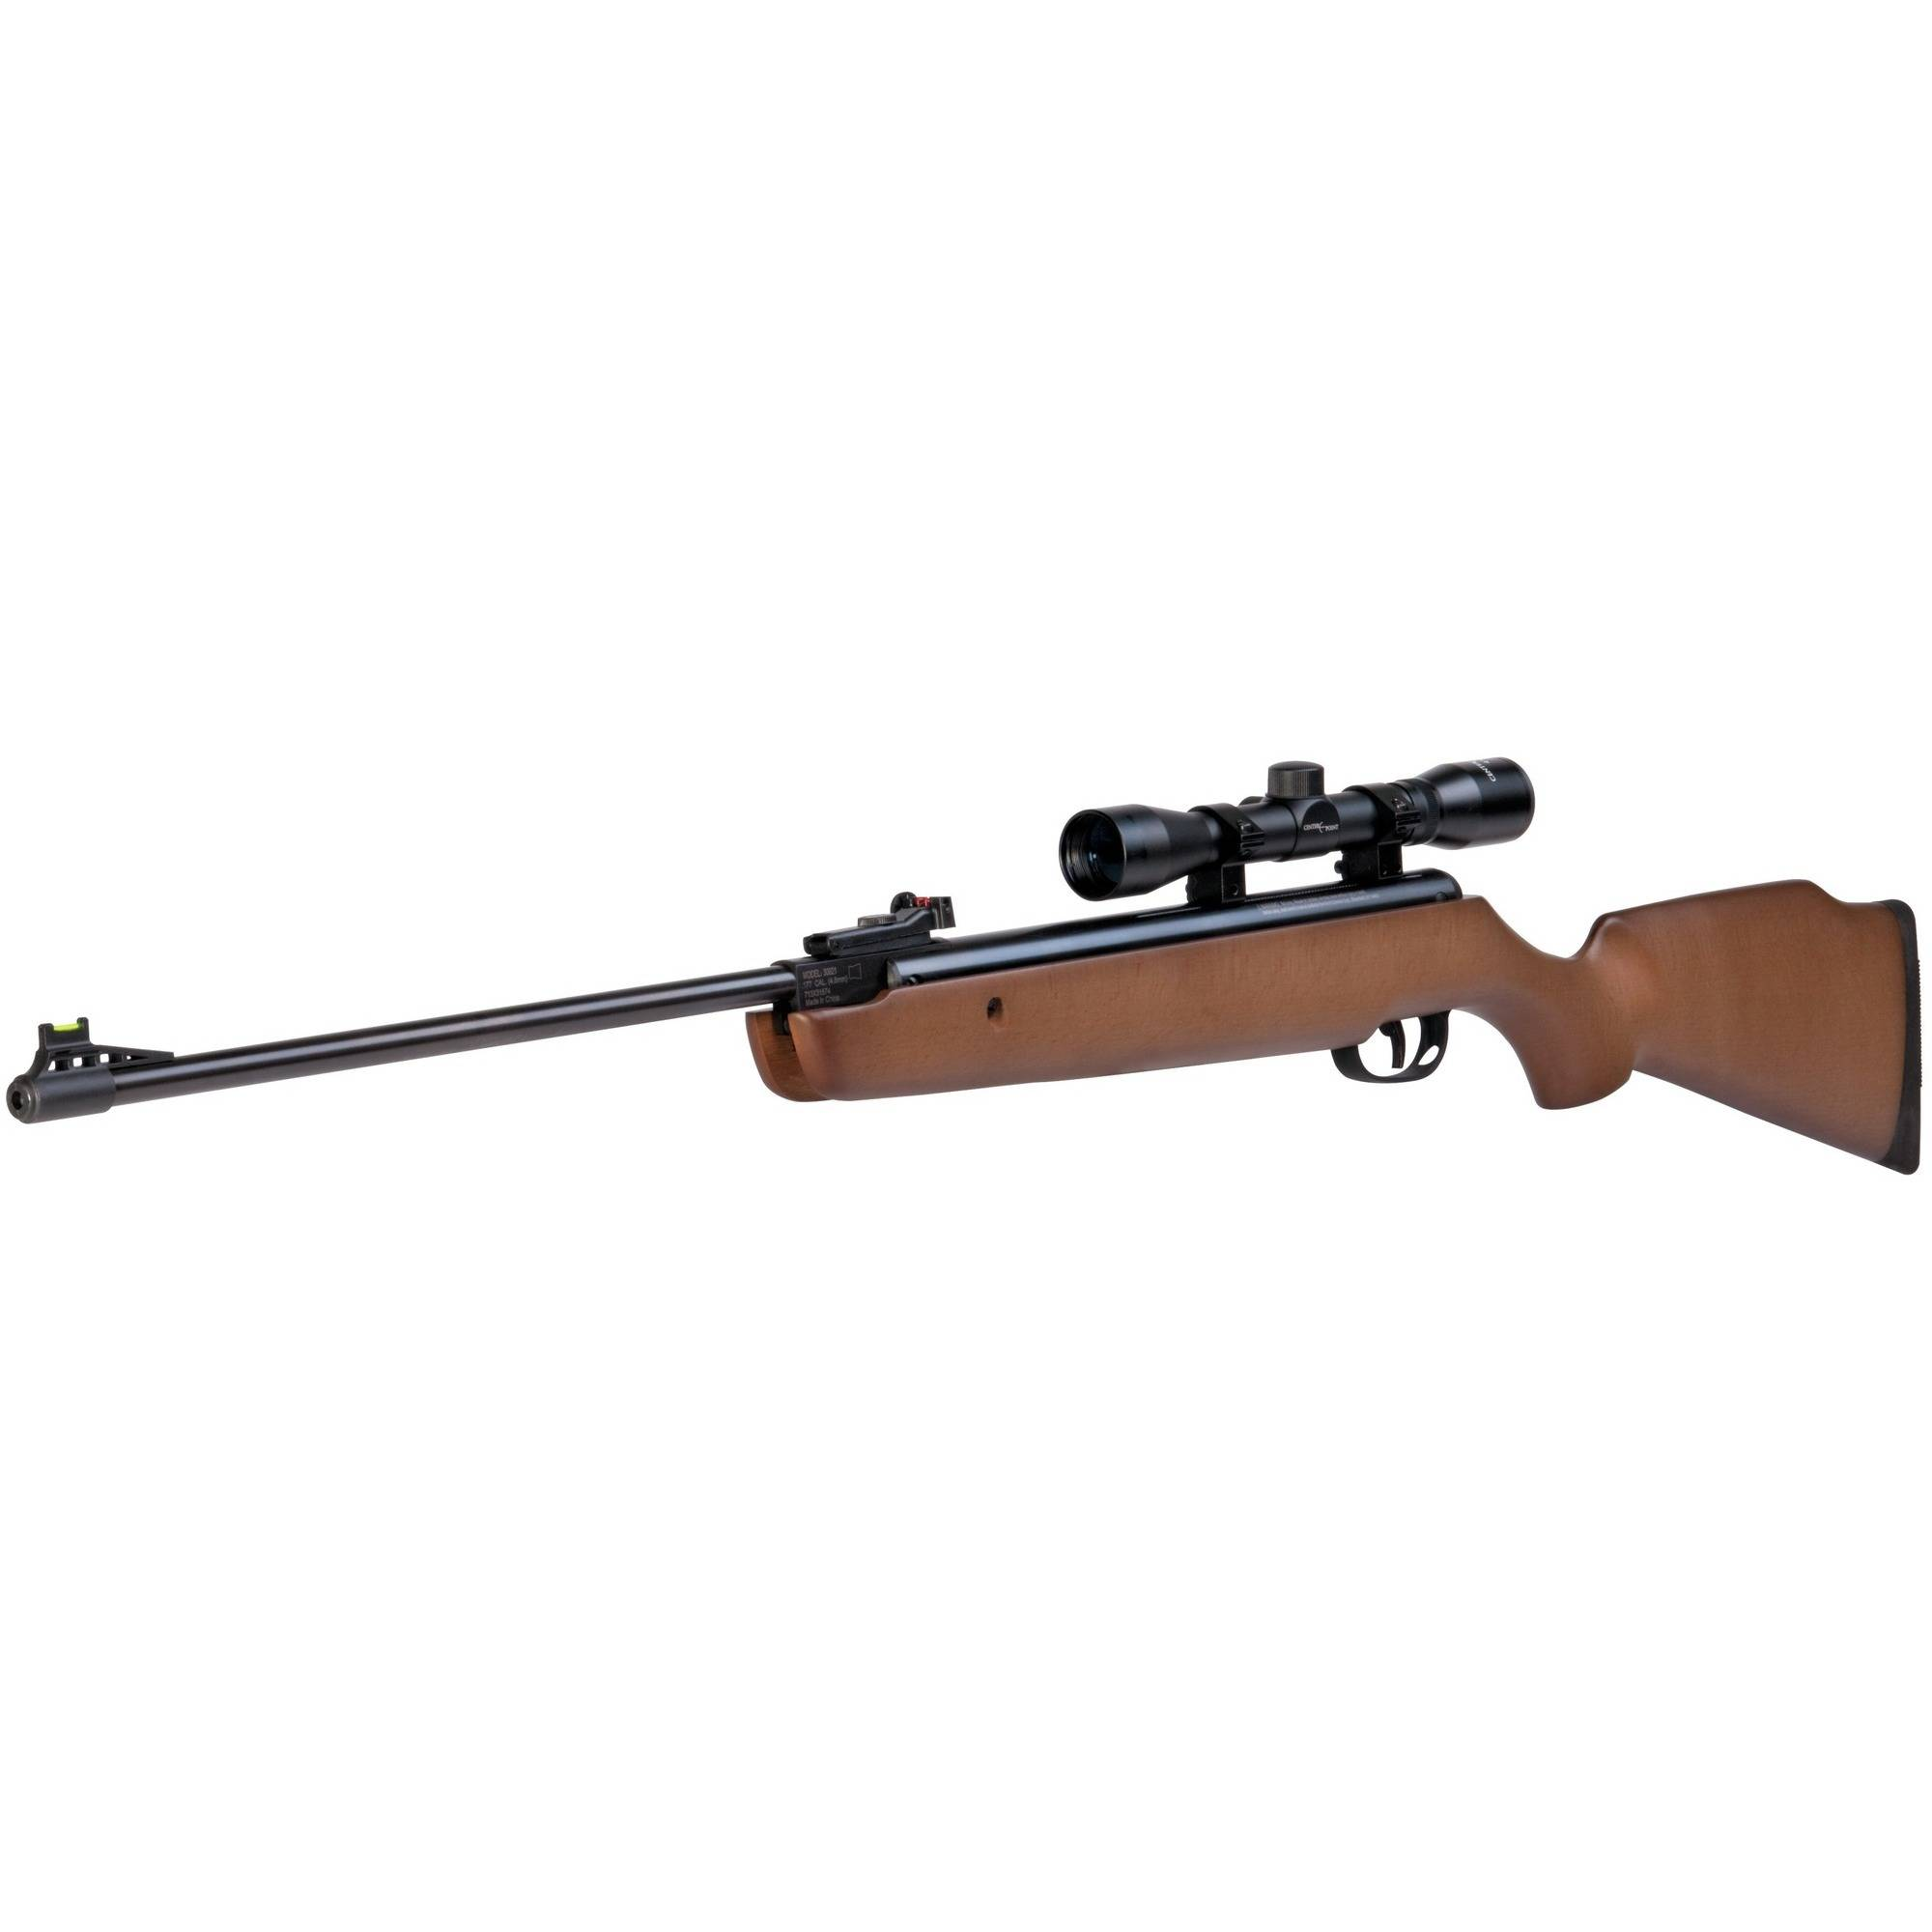 Click here to buy Crosman Vantage NP .177 Caliber Break Barrel Air Rifle with Scope by Crosman.